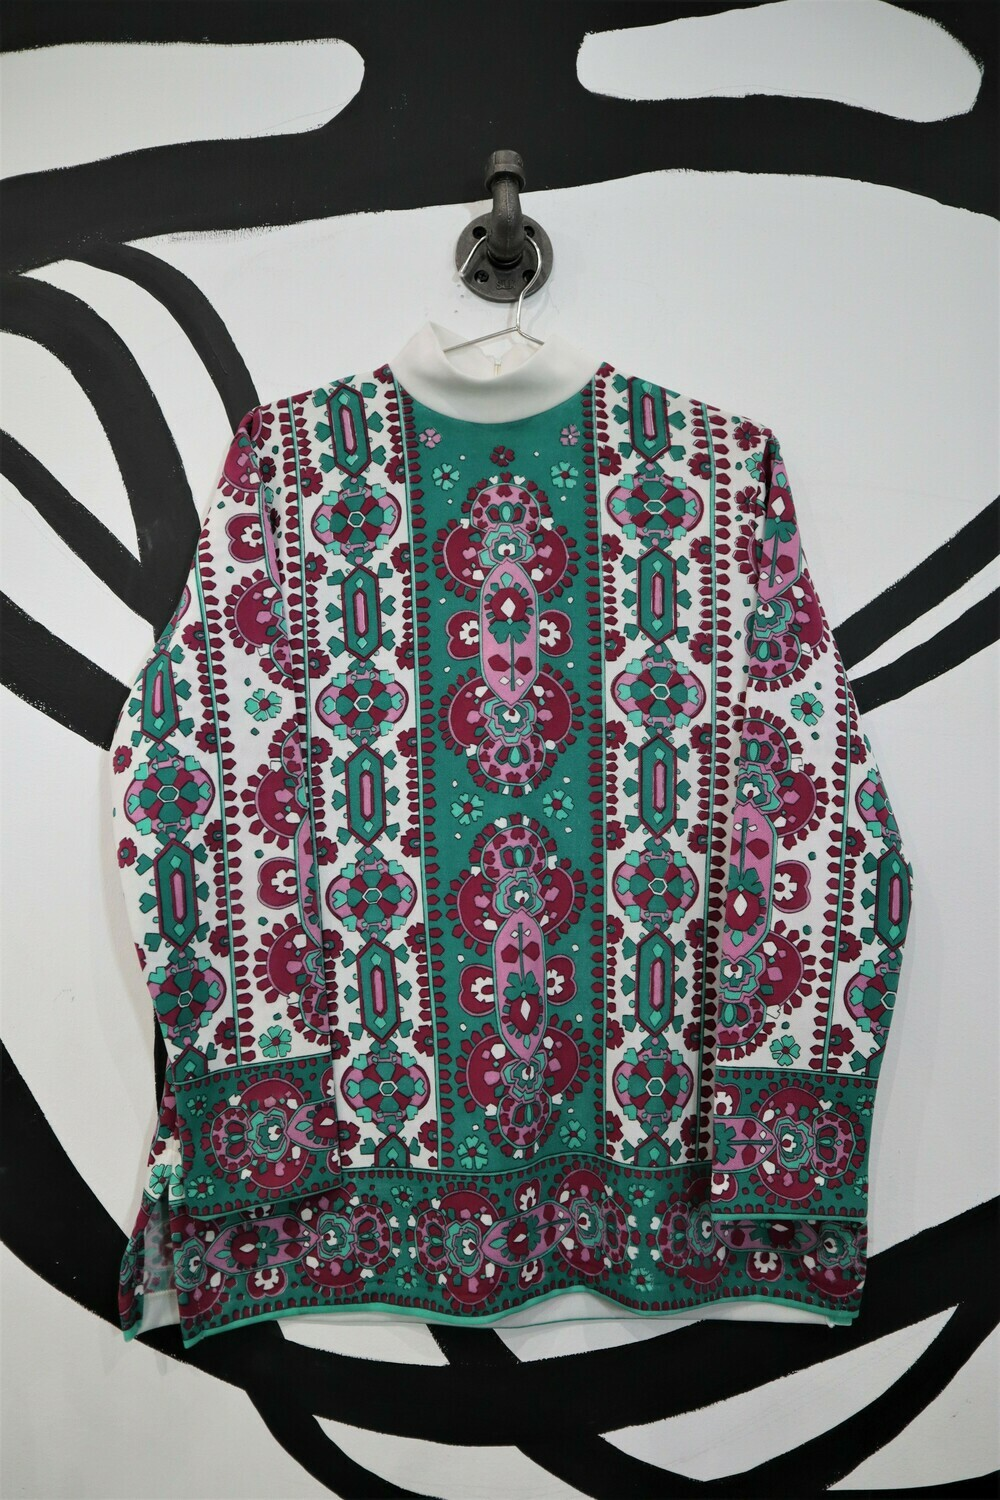 Mock Neck Printed Top - Women's Size Large